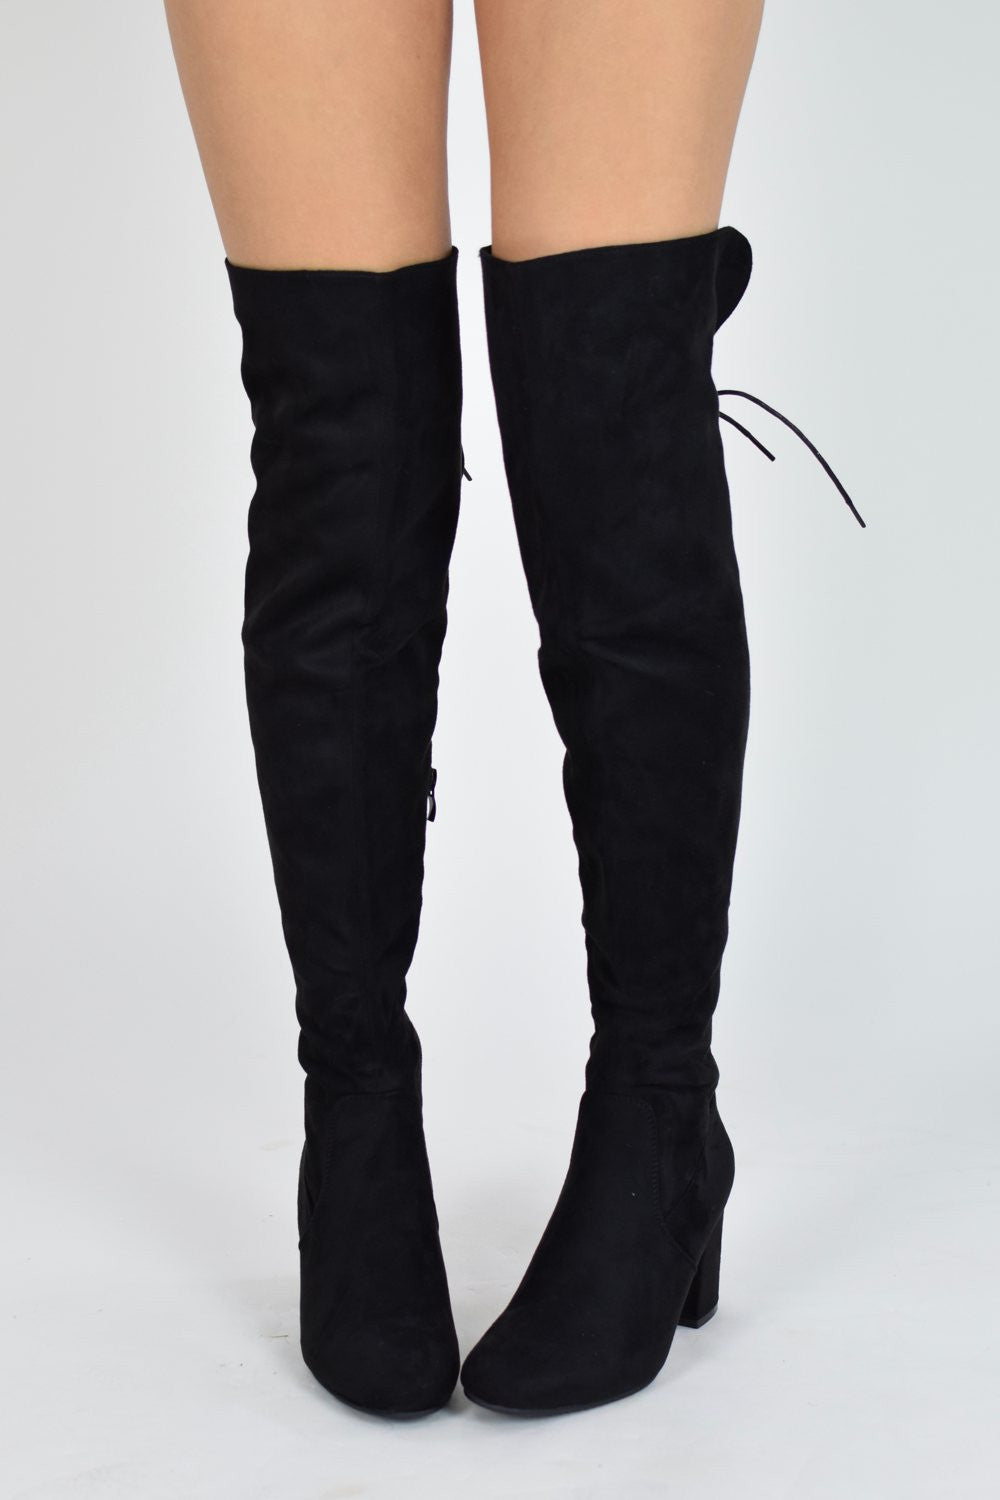 HIGH HOPES Lace Up Block Heel Over knee Boots - Black Suede - AJ Voyage - 1